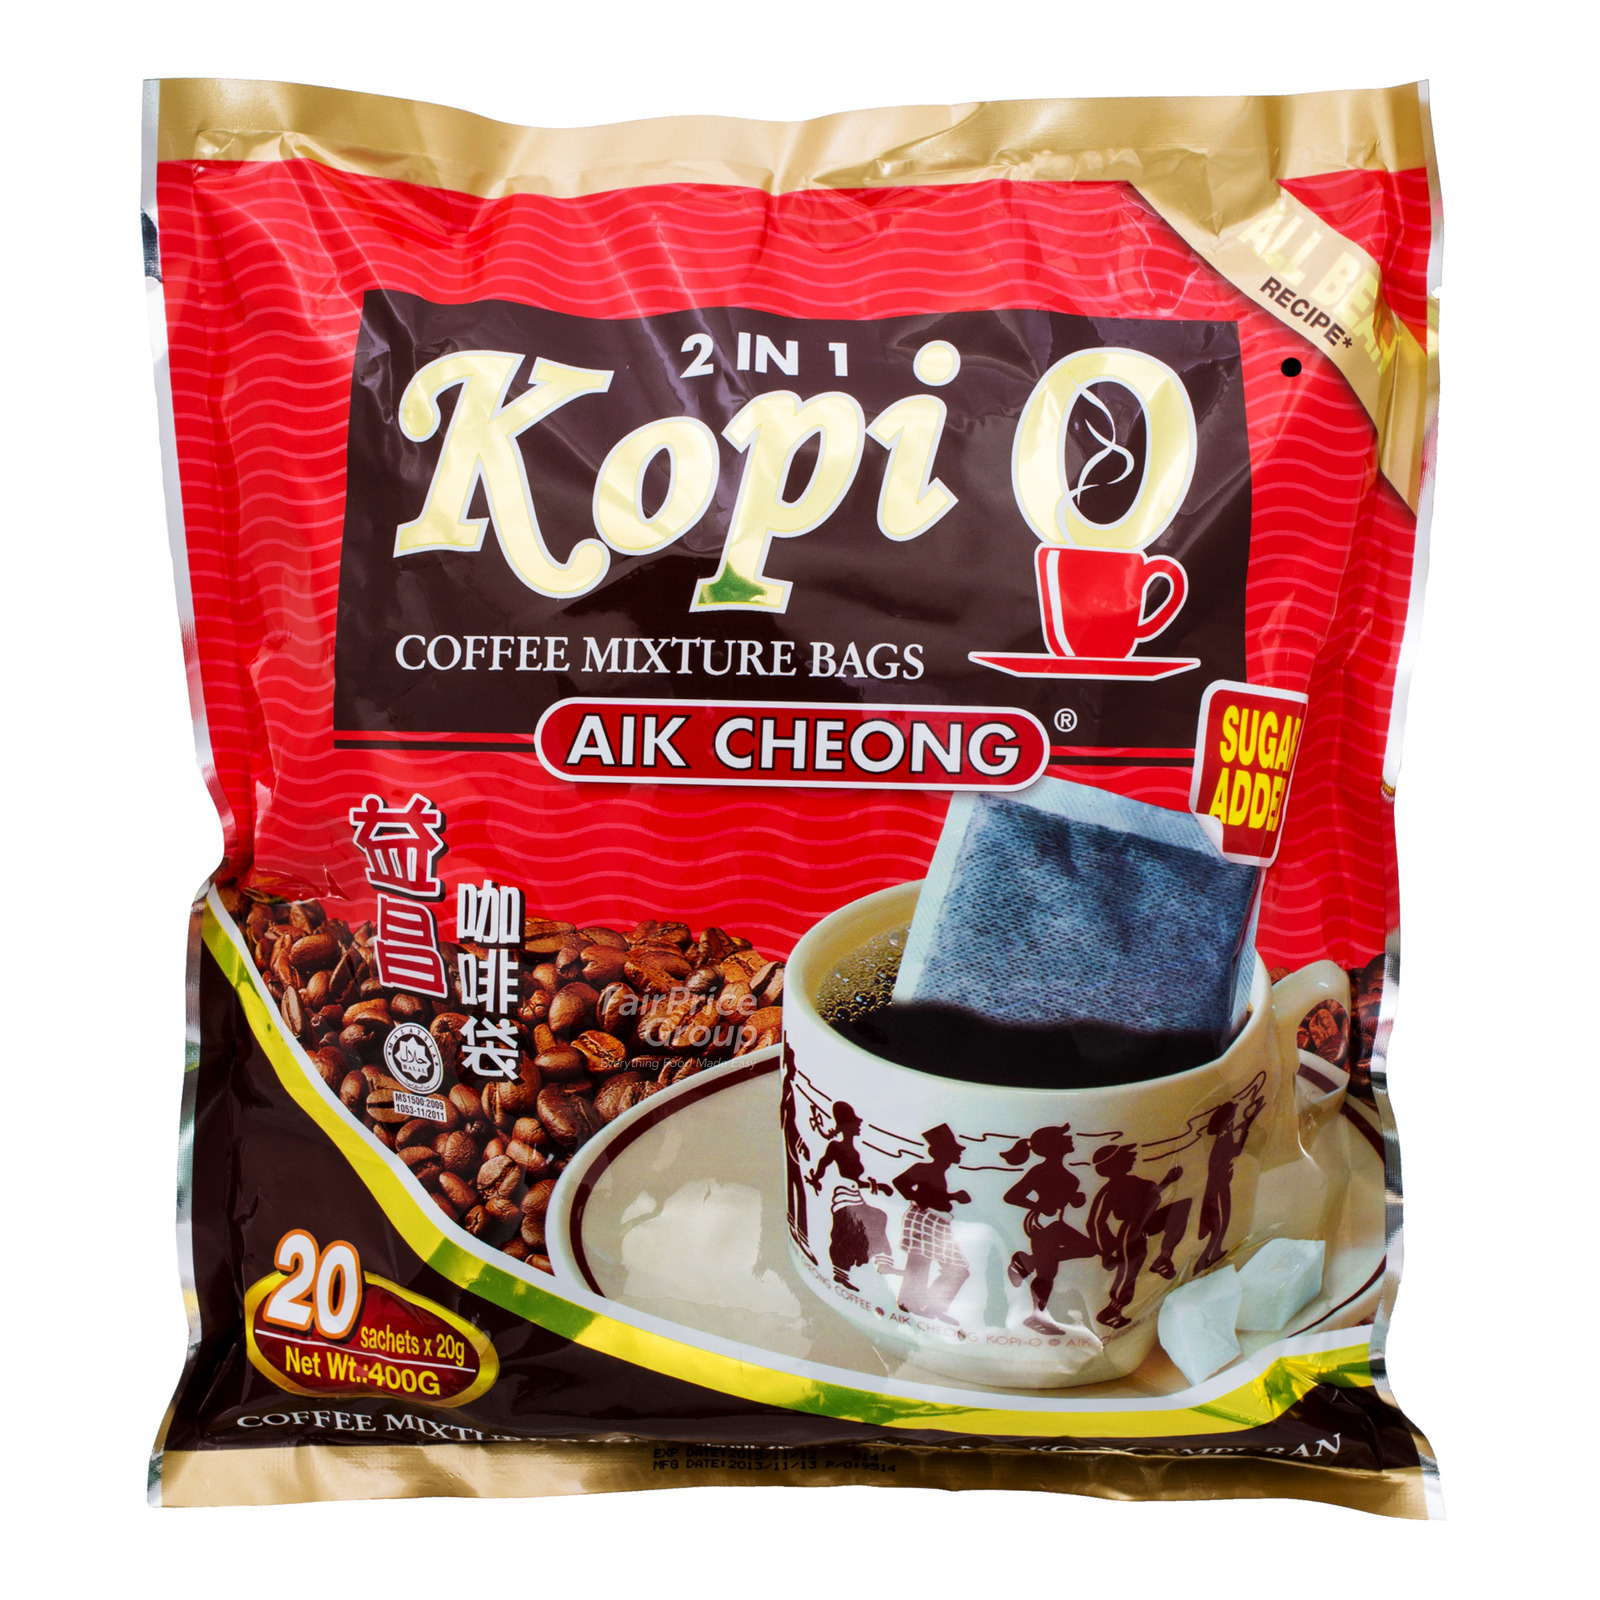 Gold Kili 2-in-1 Kopi Premium Coffee Mixture Bag With Sugar Added